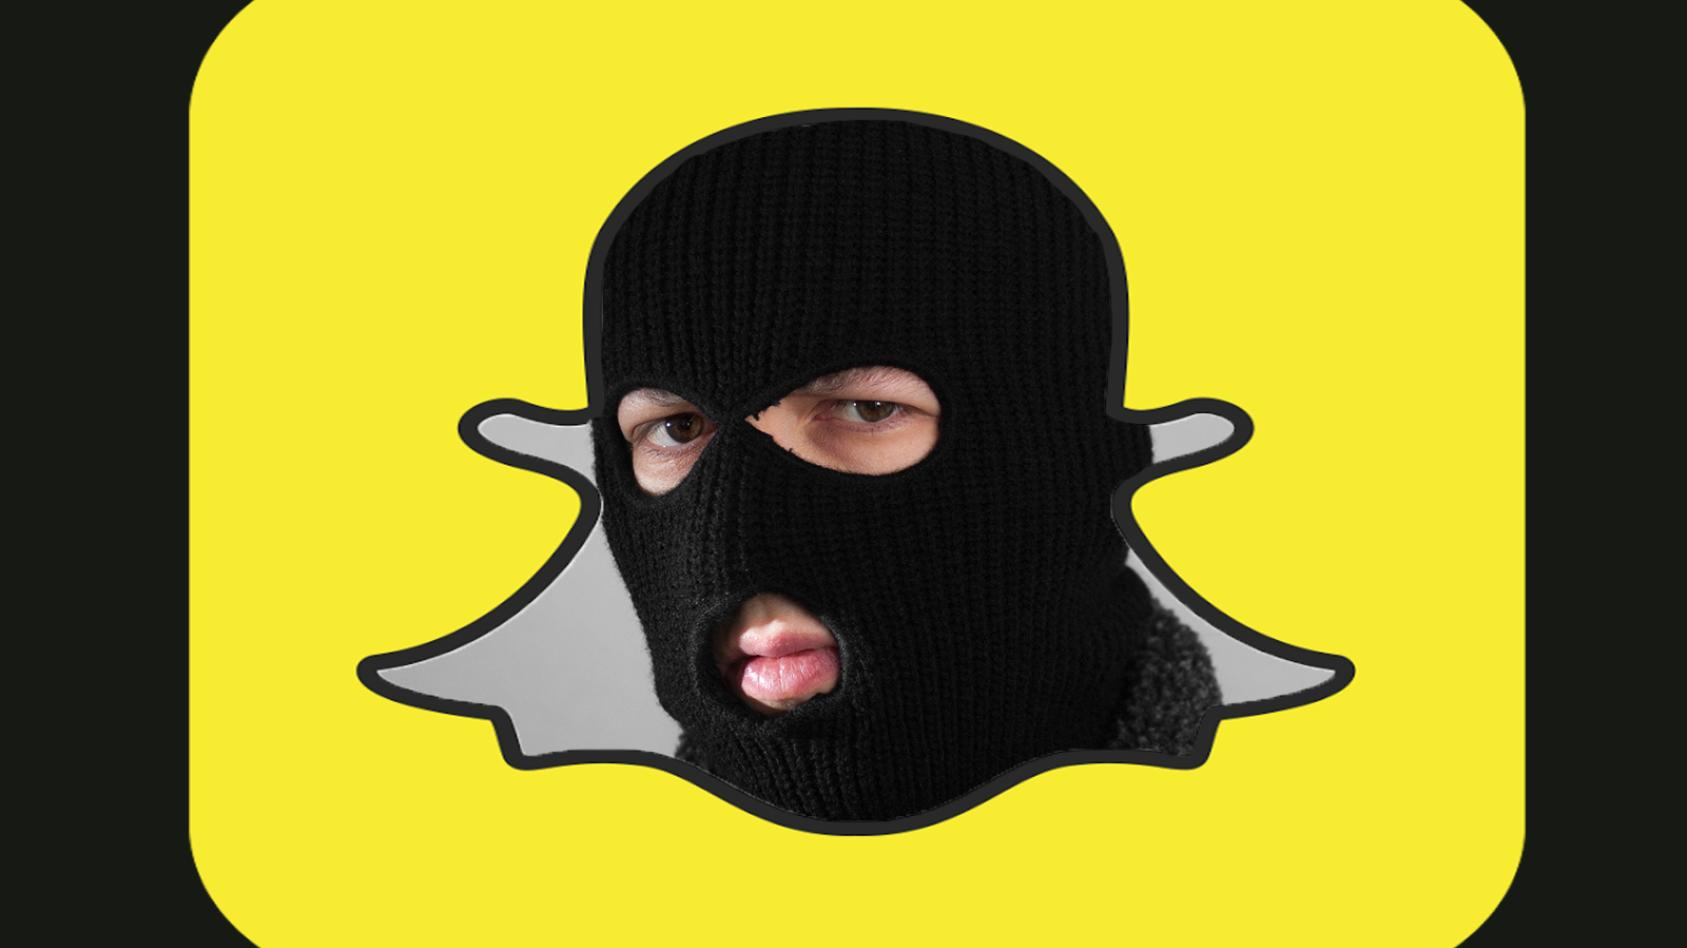 Teens are reportedly organizing parties on Snapchat to jump and rob people: https://t.co/vpEF21kRDk https://t.co/6CYHfZu7cY